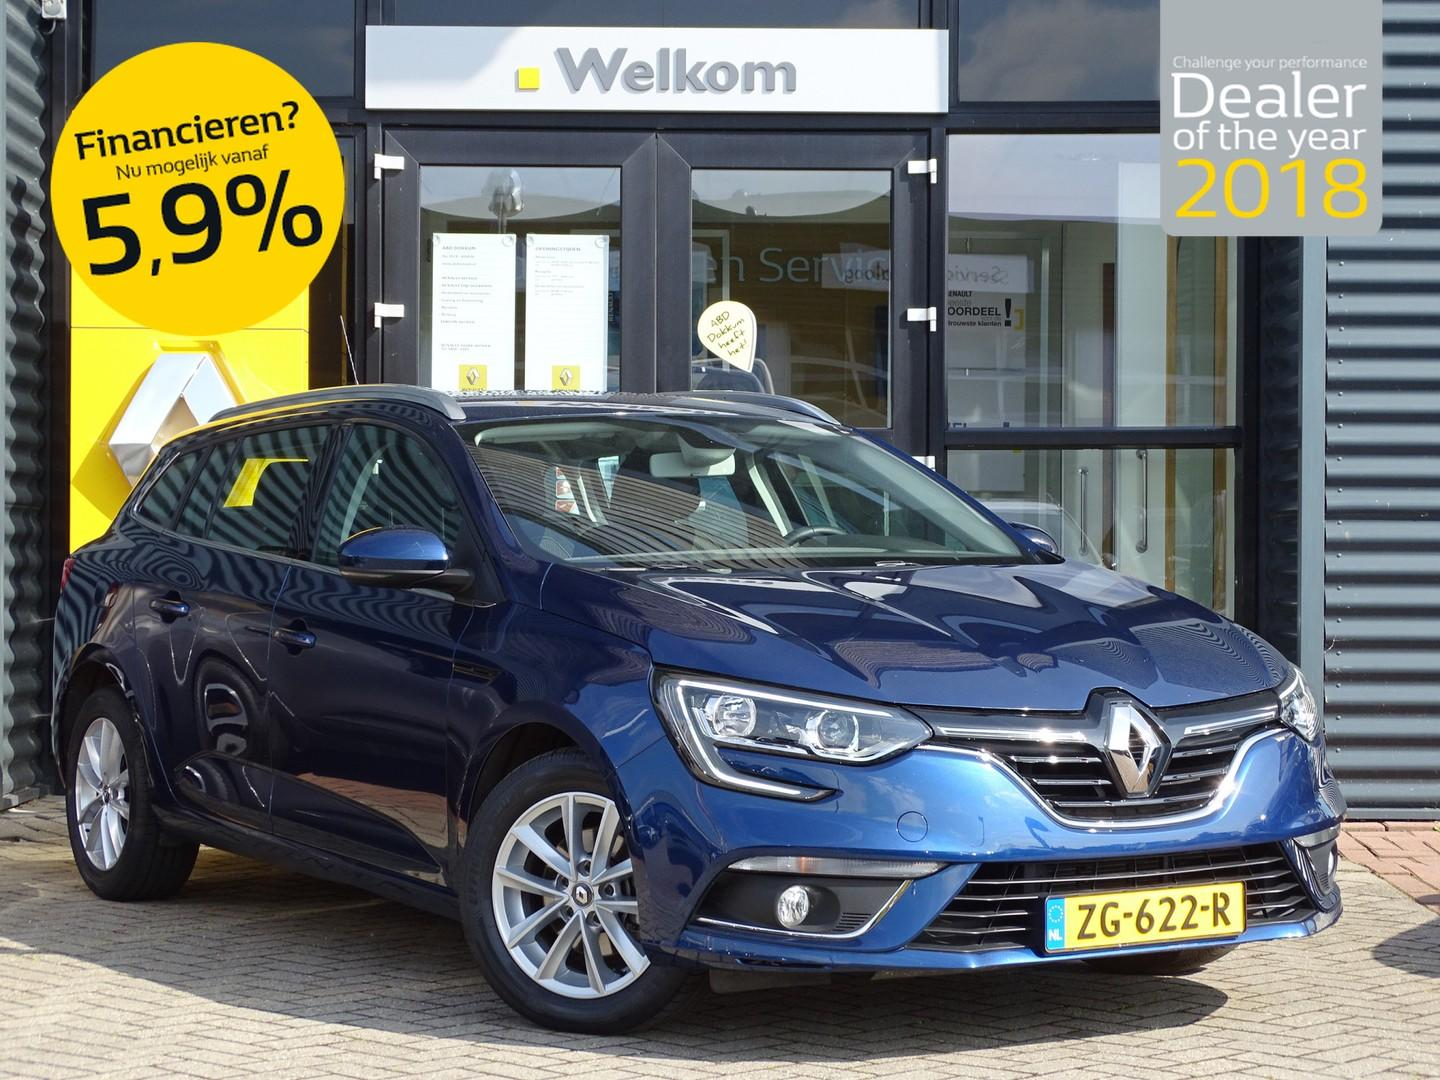 Renault Mégane Estate 1.5 dci eco2 limited